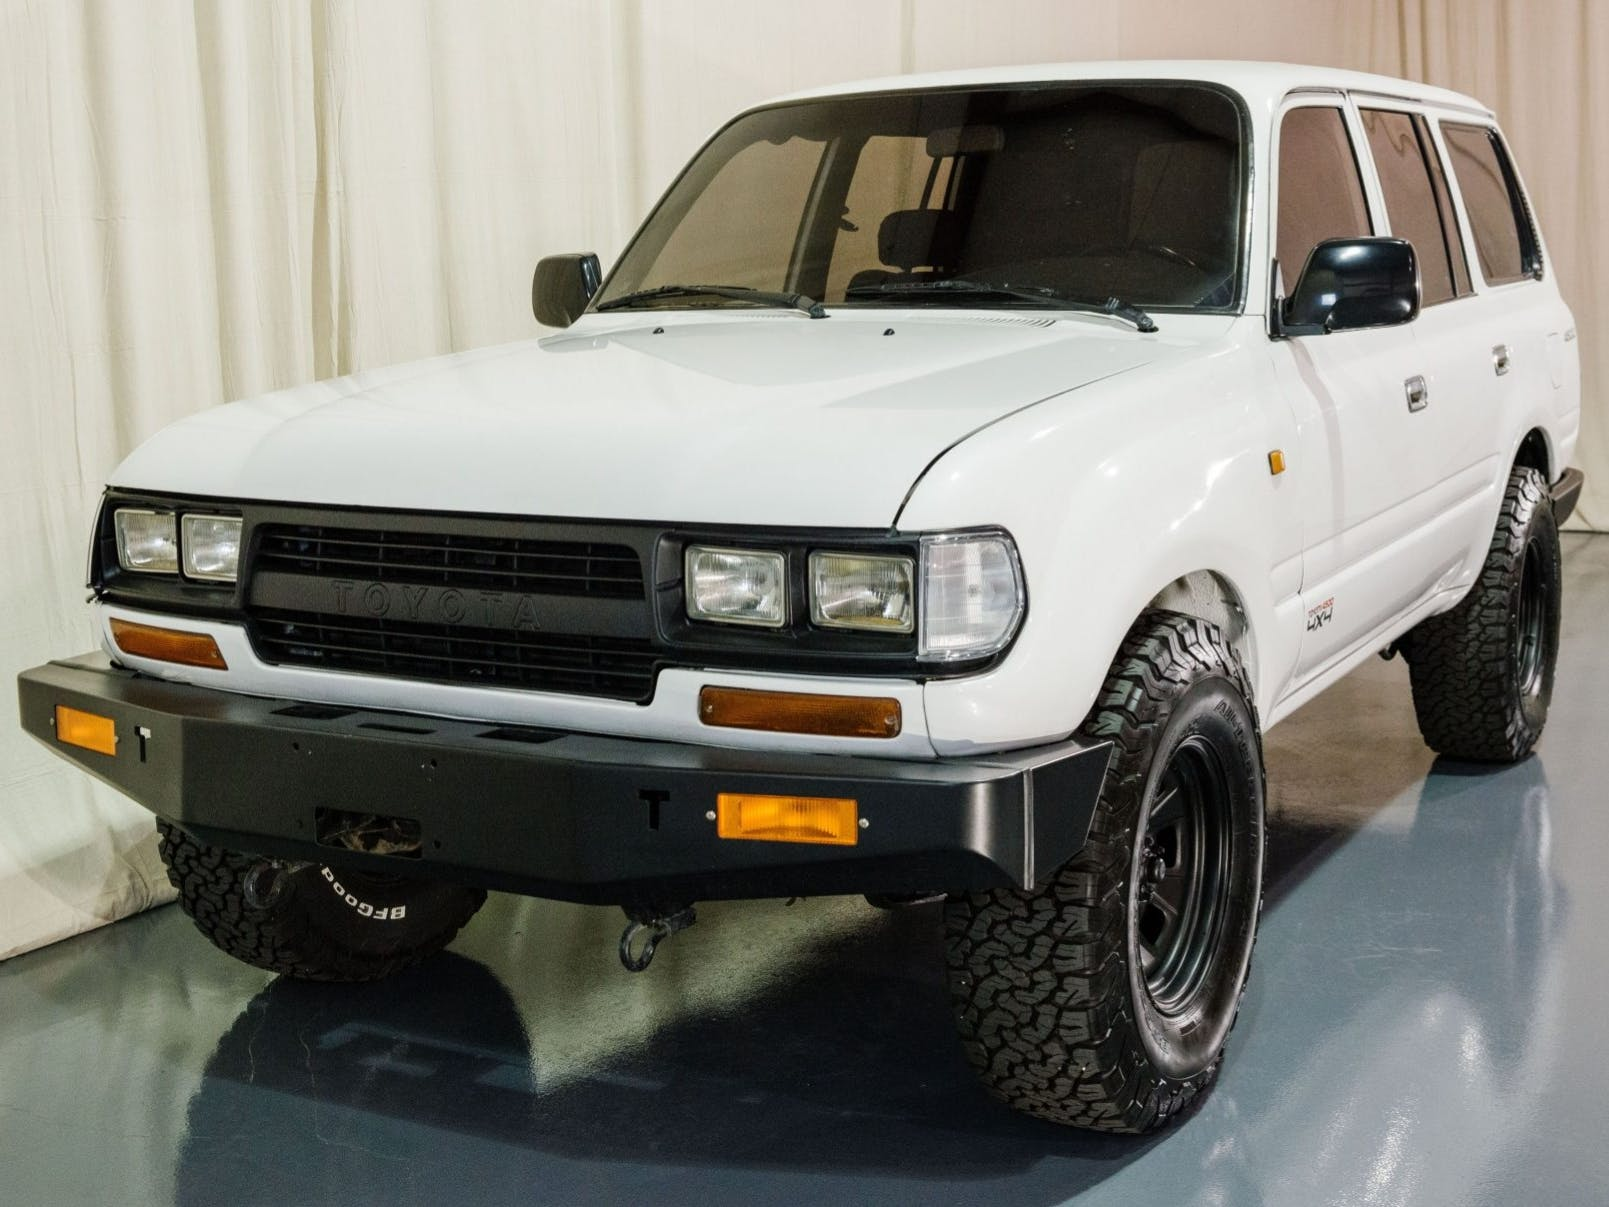 1993 Toyota Land Cruiser FZJ80 5-Speed